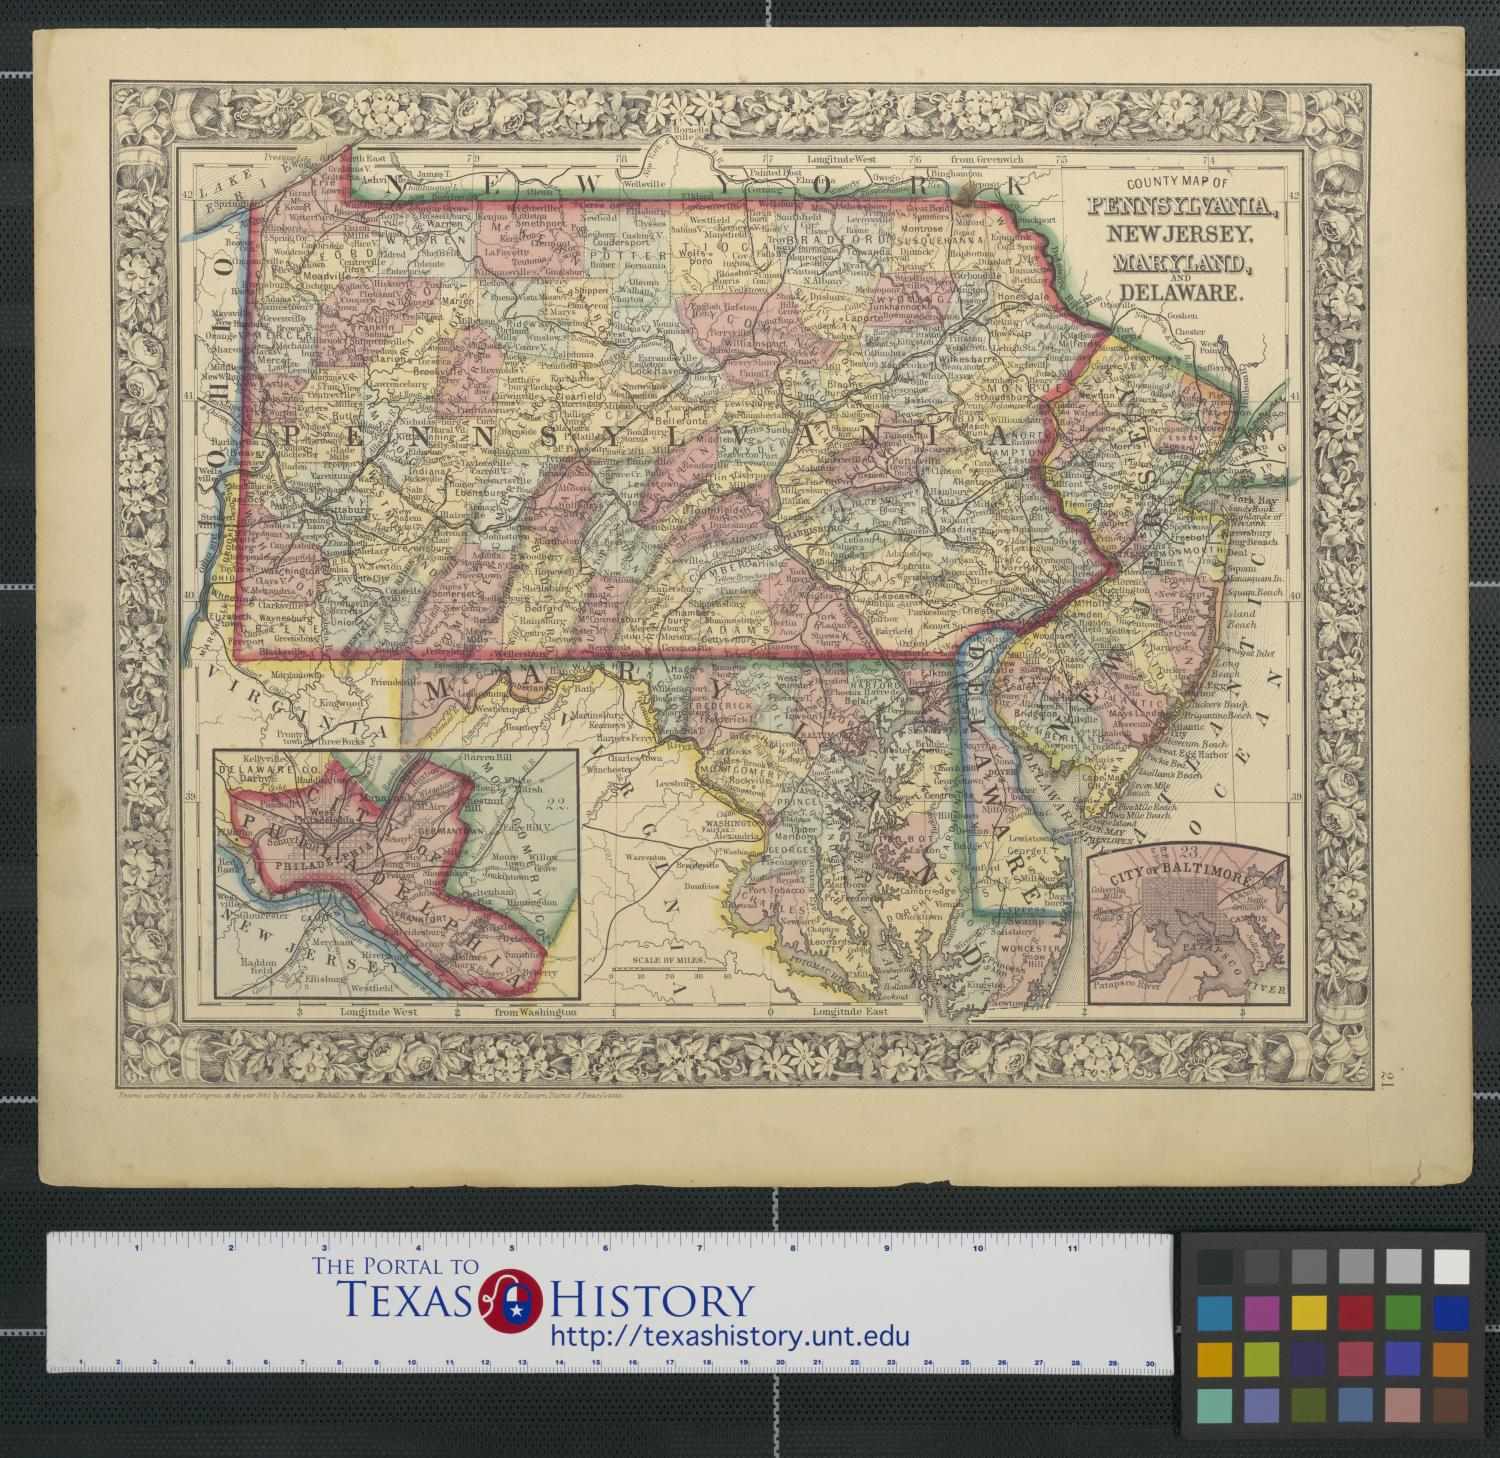 County Map Of Pennsylvania New Jersey Maryland And